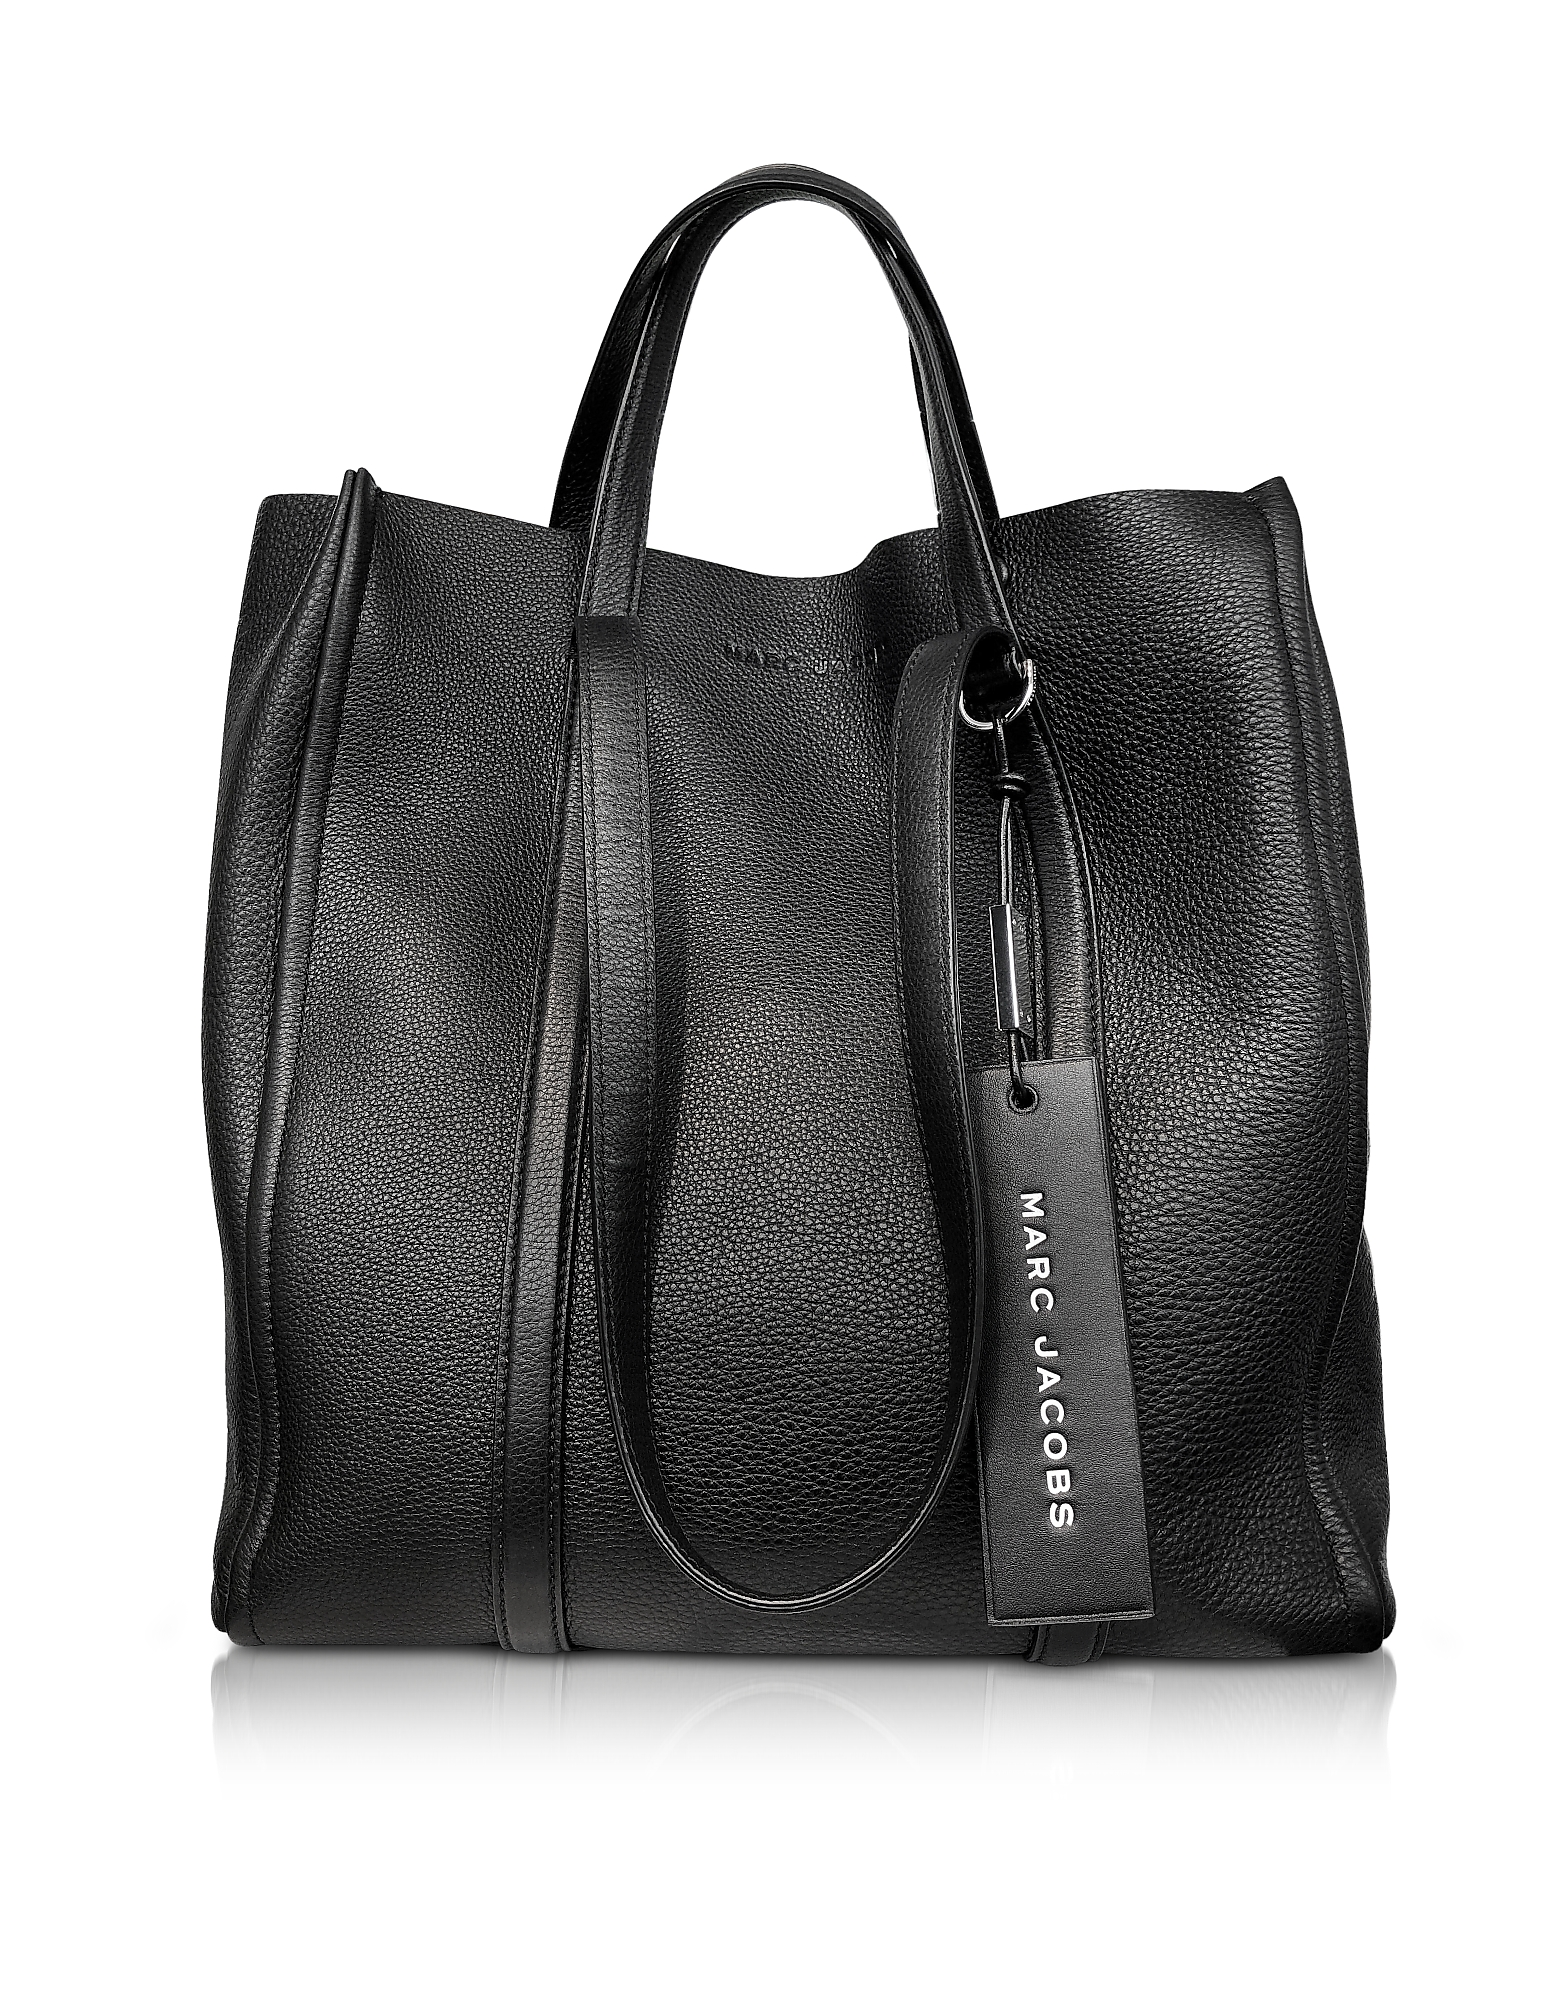 Marc Jacobs Handbags, The Oversized Tag Tote